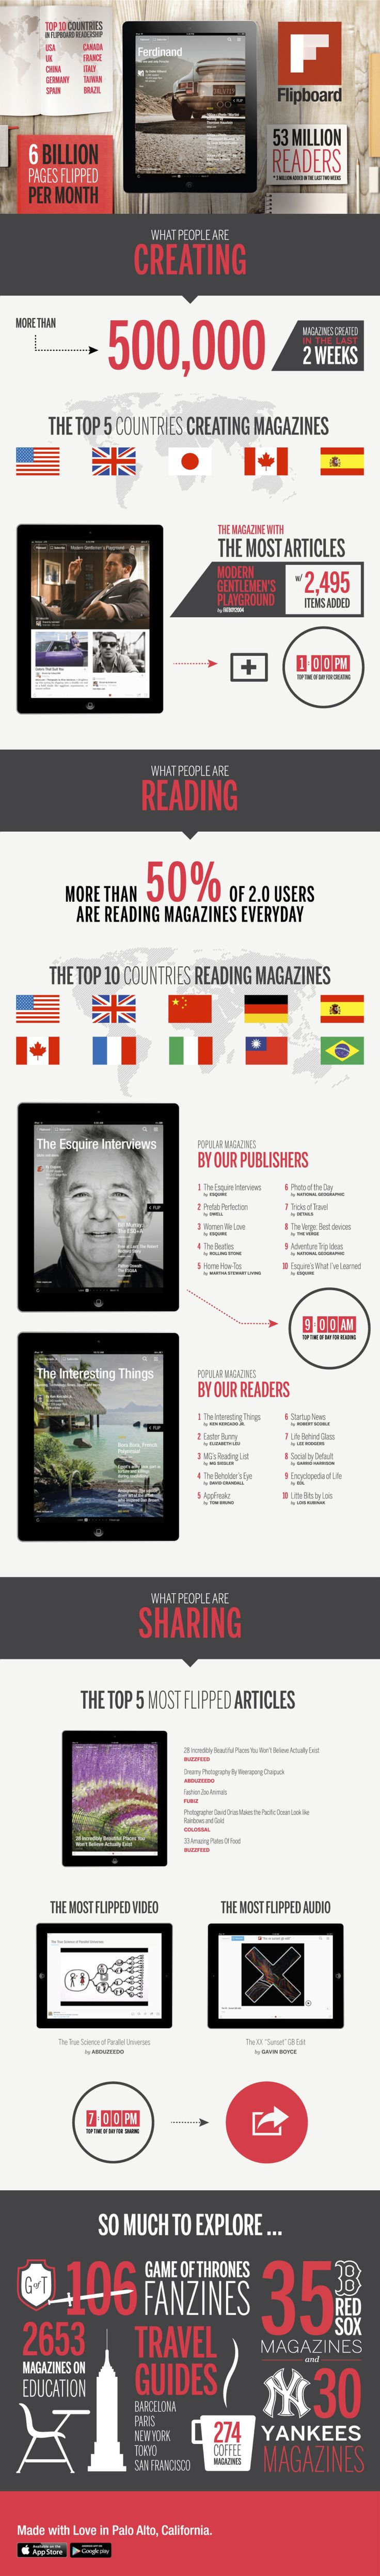 News aggregation app Flipboard added the ability to create magazines in an update in April 2013, and creators have now produced 500,000+ magazines.